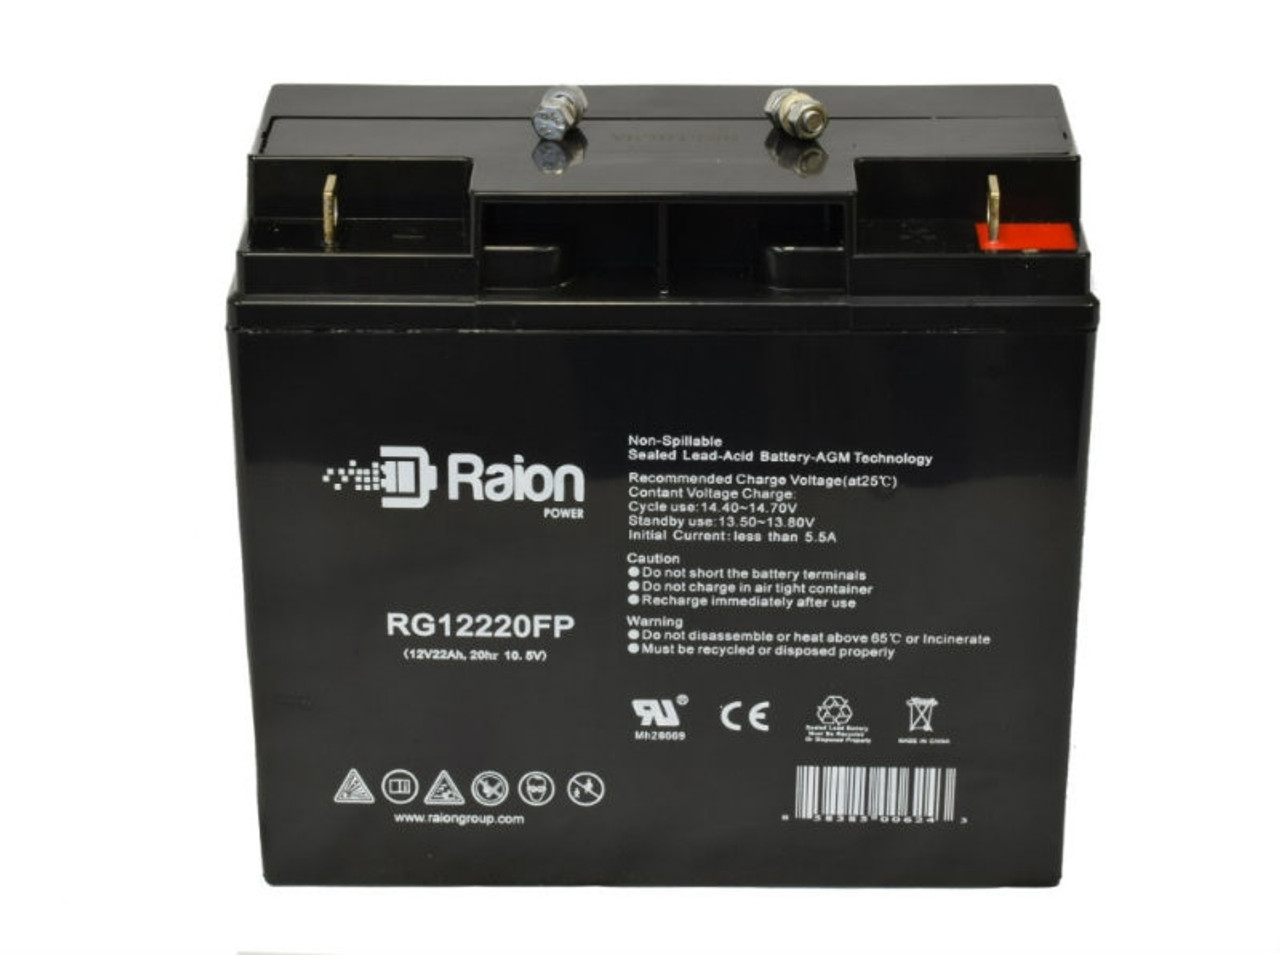 Raion Power 12V 22Ah SLA Battery With FP Terminals For Silent Partner Quest Tennis Ball Machine Large